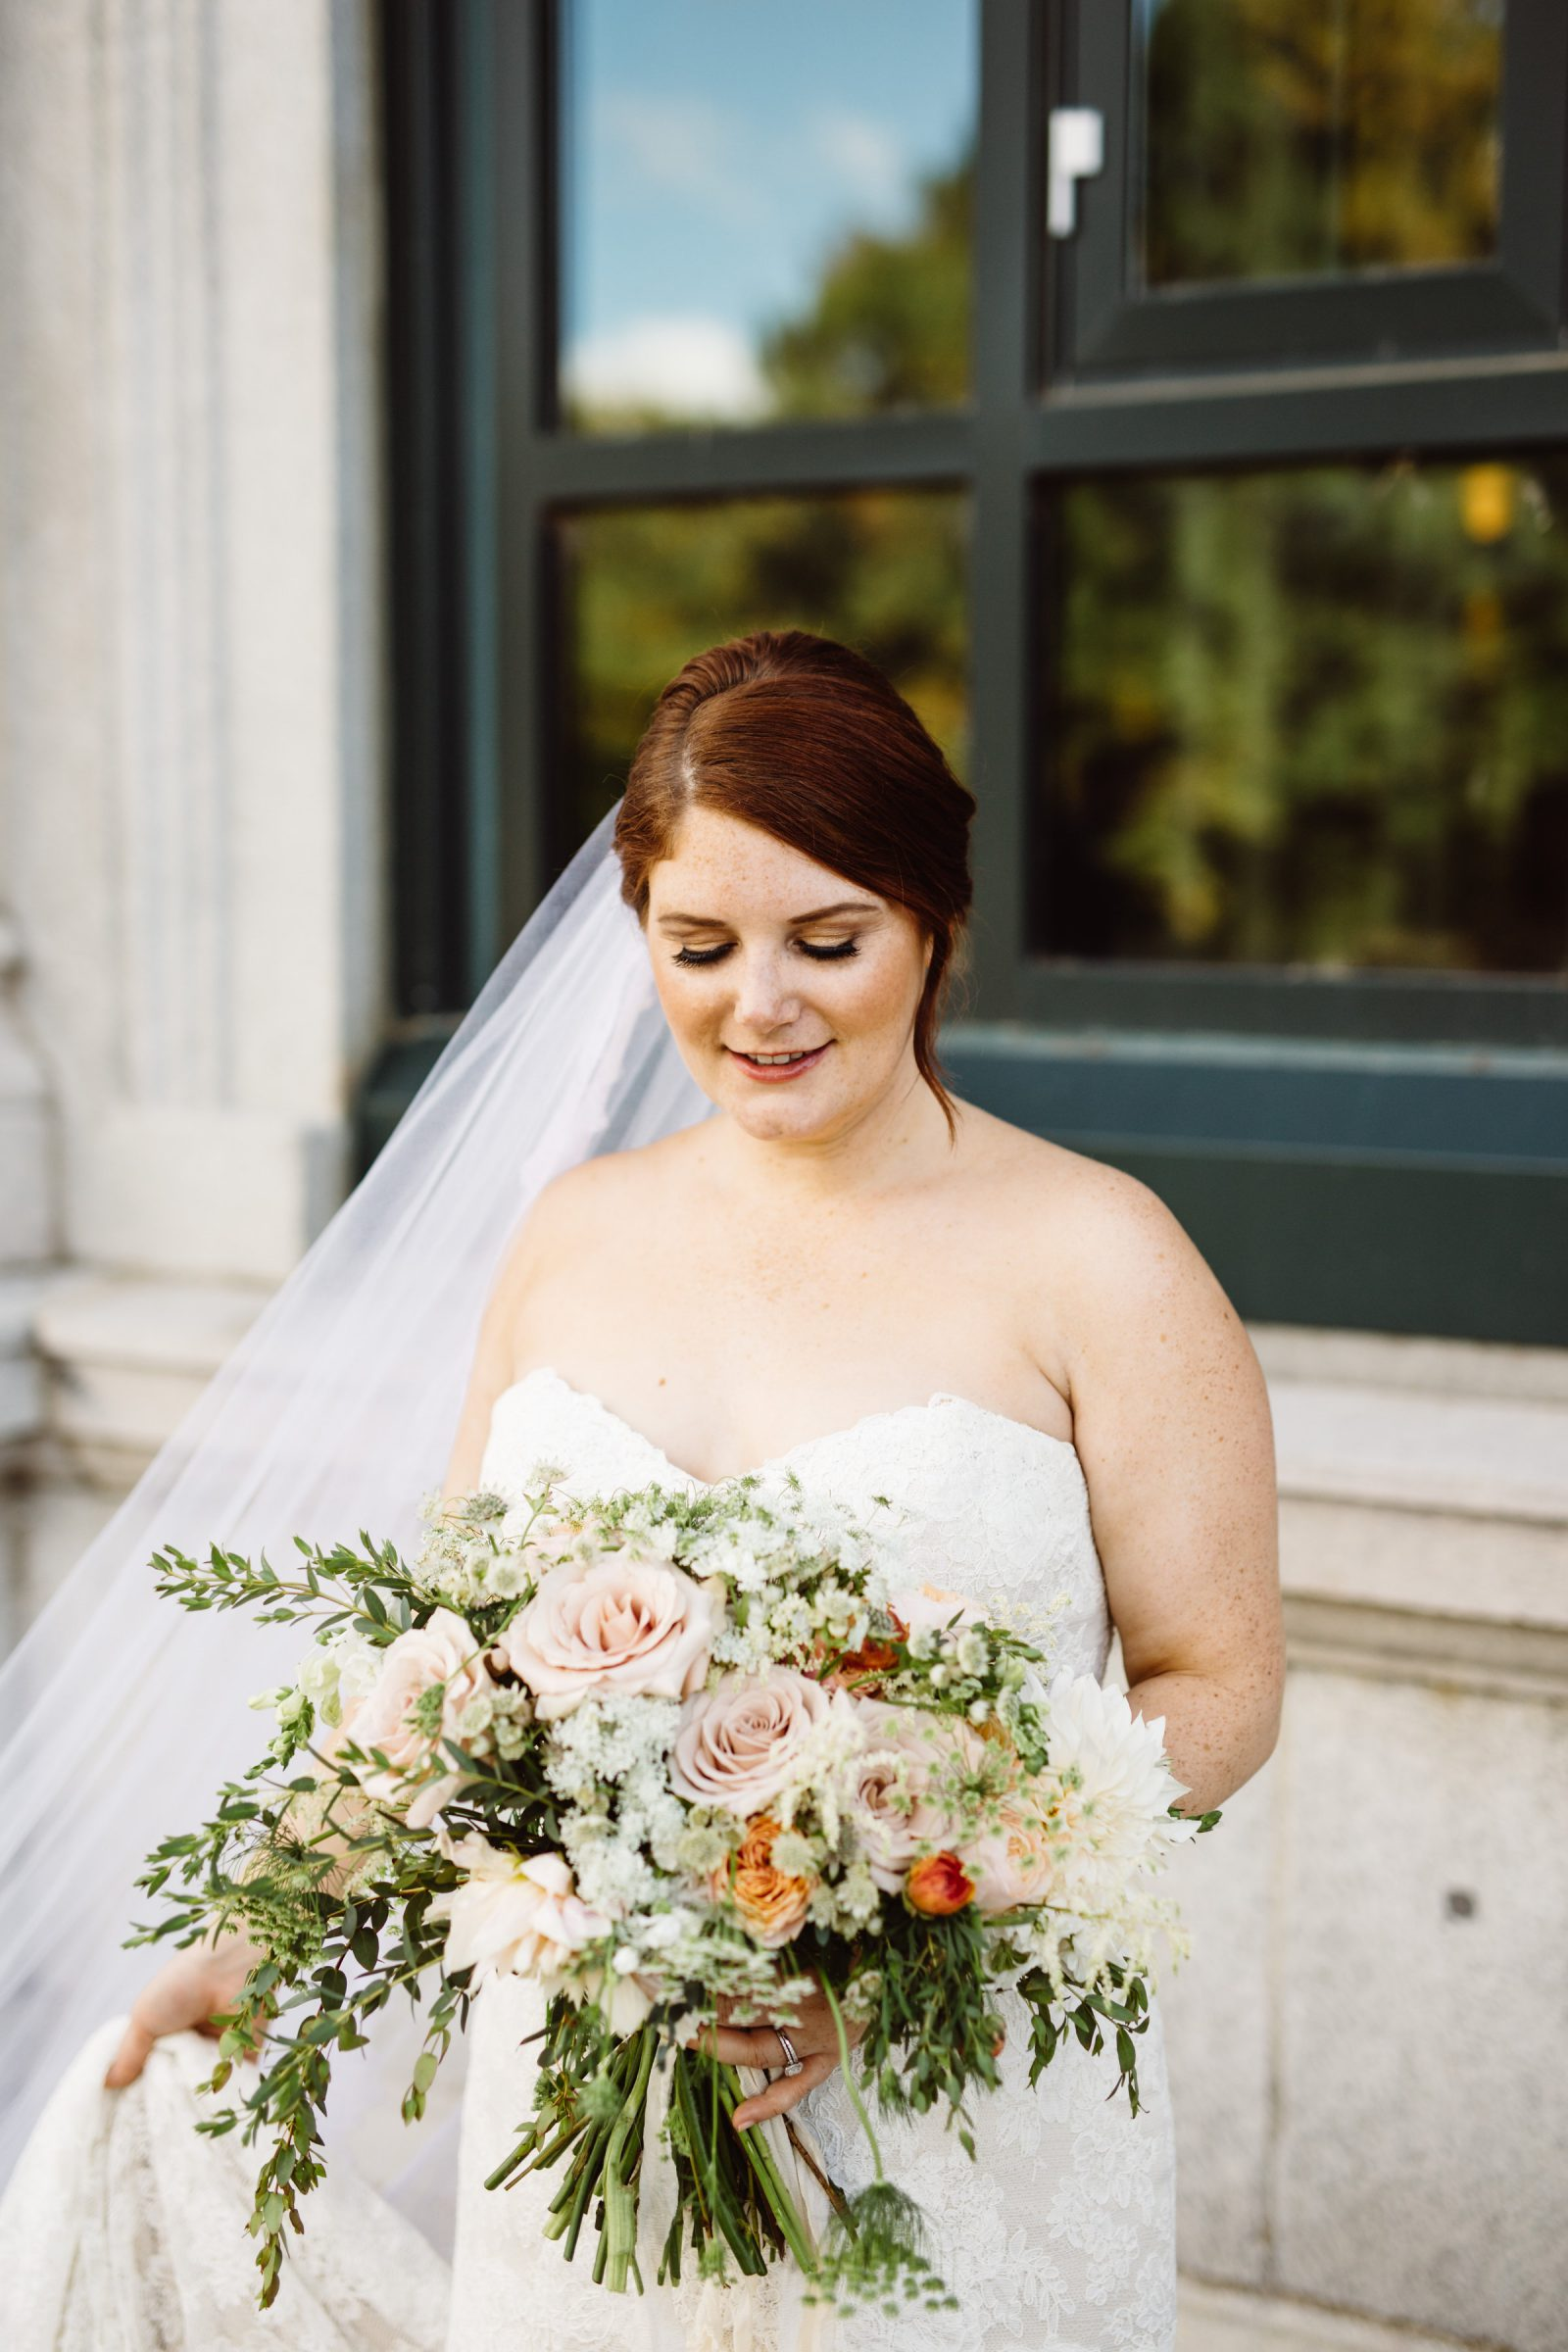 Ridgeland Mansion Bride with amazing fall garden flower bouquet by Fresh Designs Florist. Photo by Ali & Paul Co